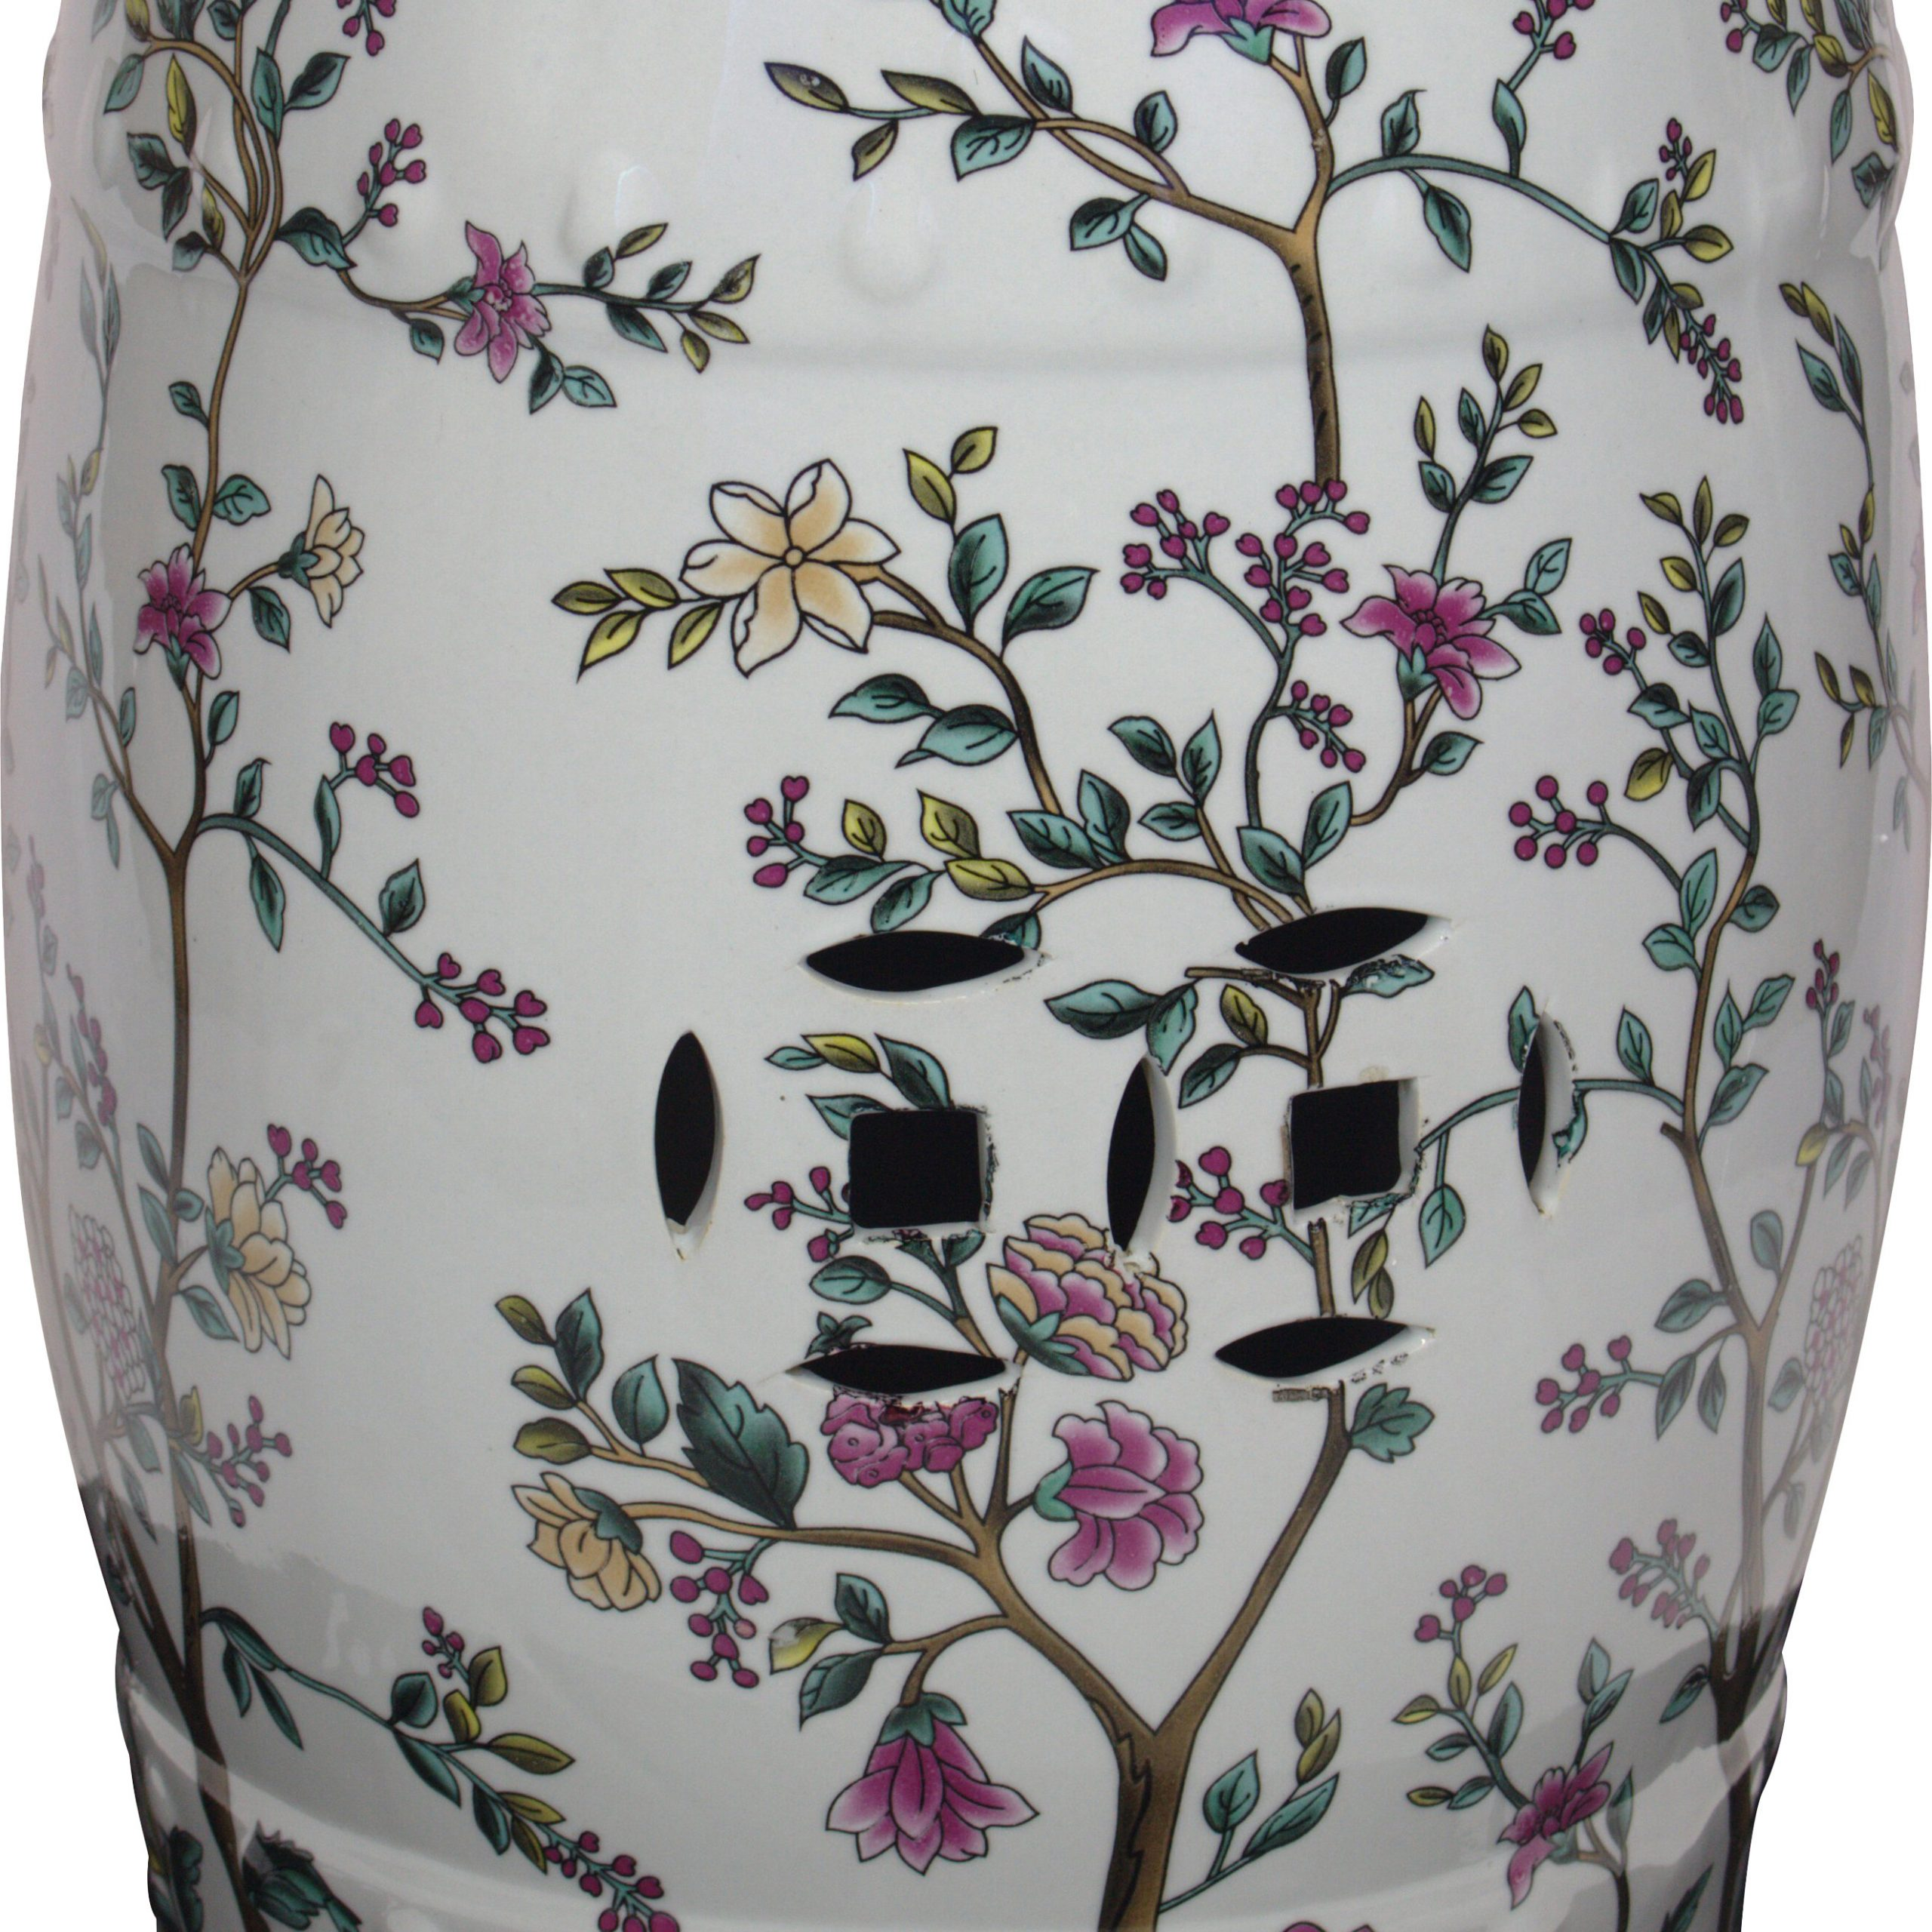 Recent Svendsen Ceramic Garden Stools Inside Ceramic Garden Stool (View 5 of 30)